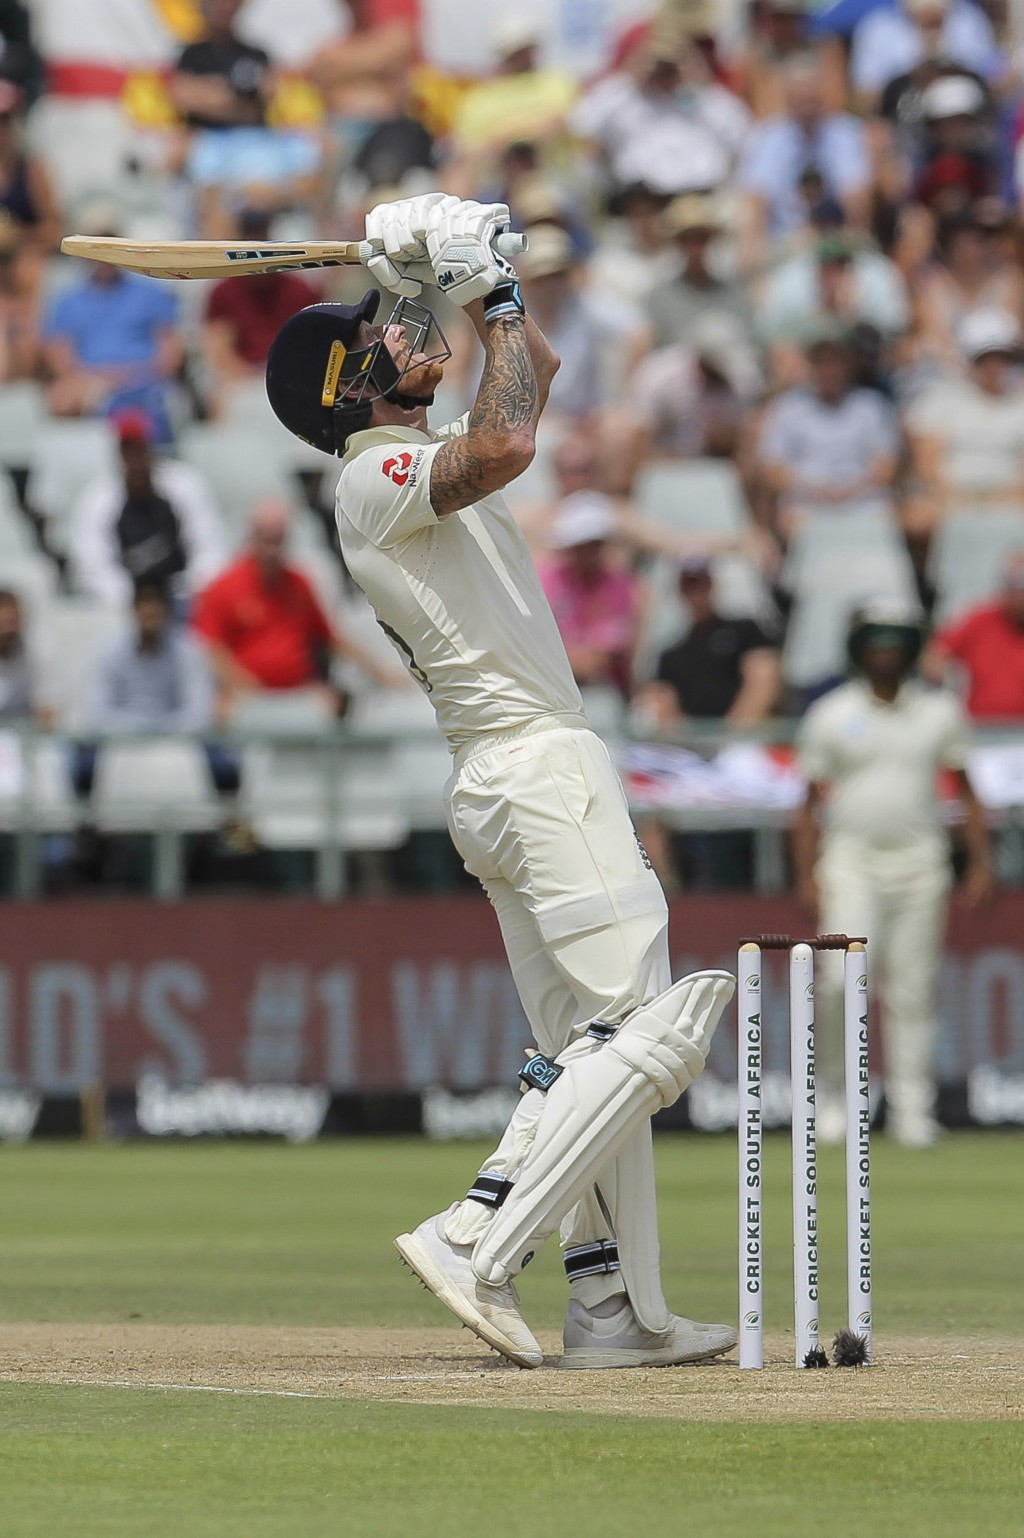 England's batsman Ben Stokes watches as the ball flies high into the outfield, the possible catch was missed by South Africa's wicketkeeper Quinton de...